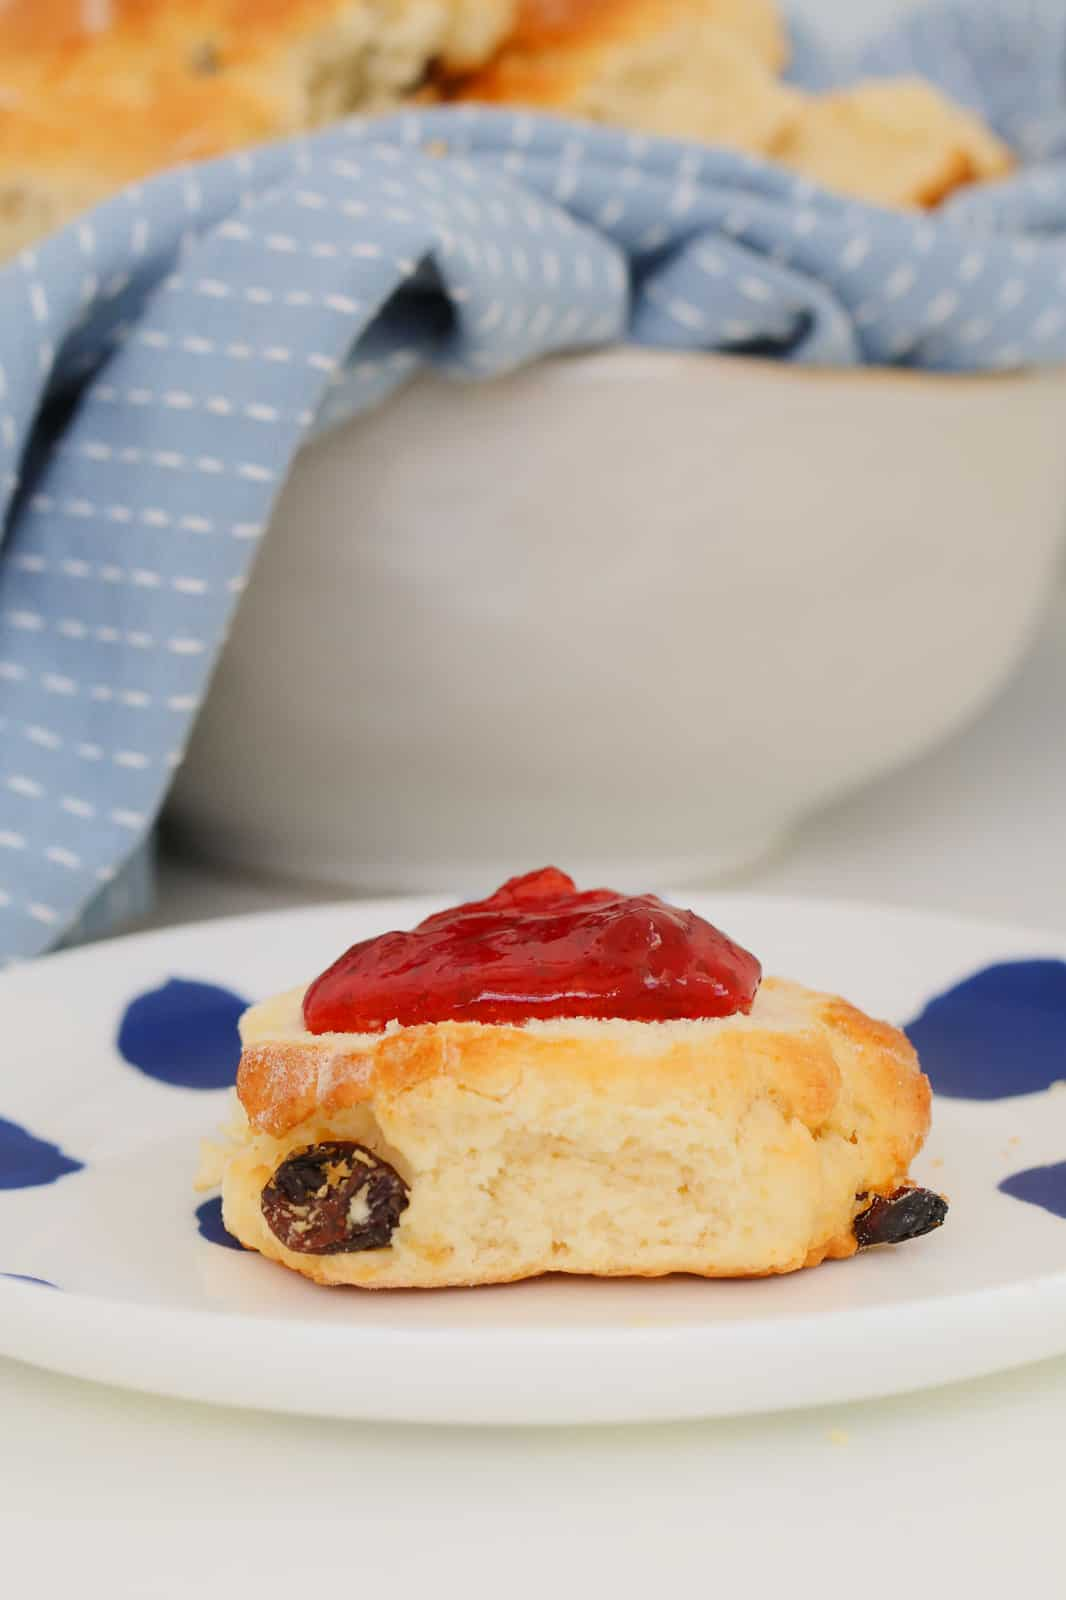 A close up shot of a fruit scone with red jam on top, sitting on white and blue plate.